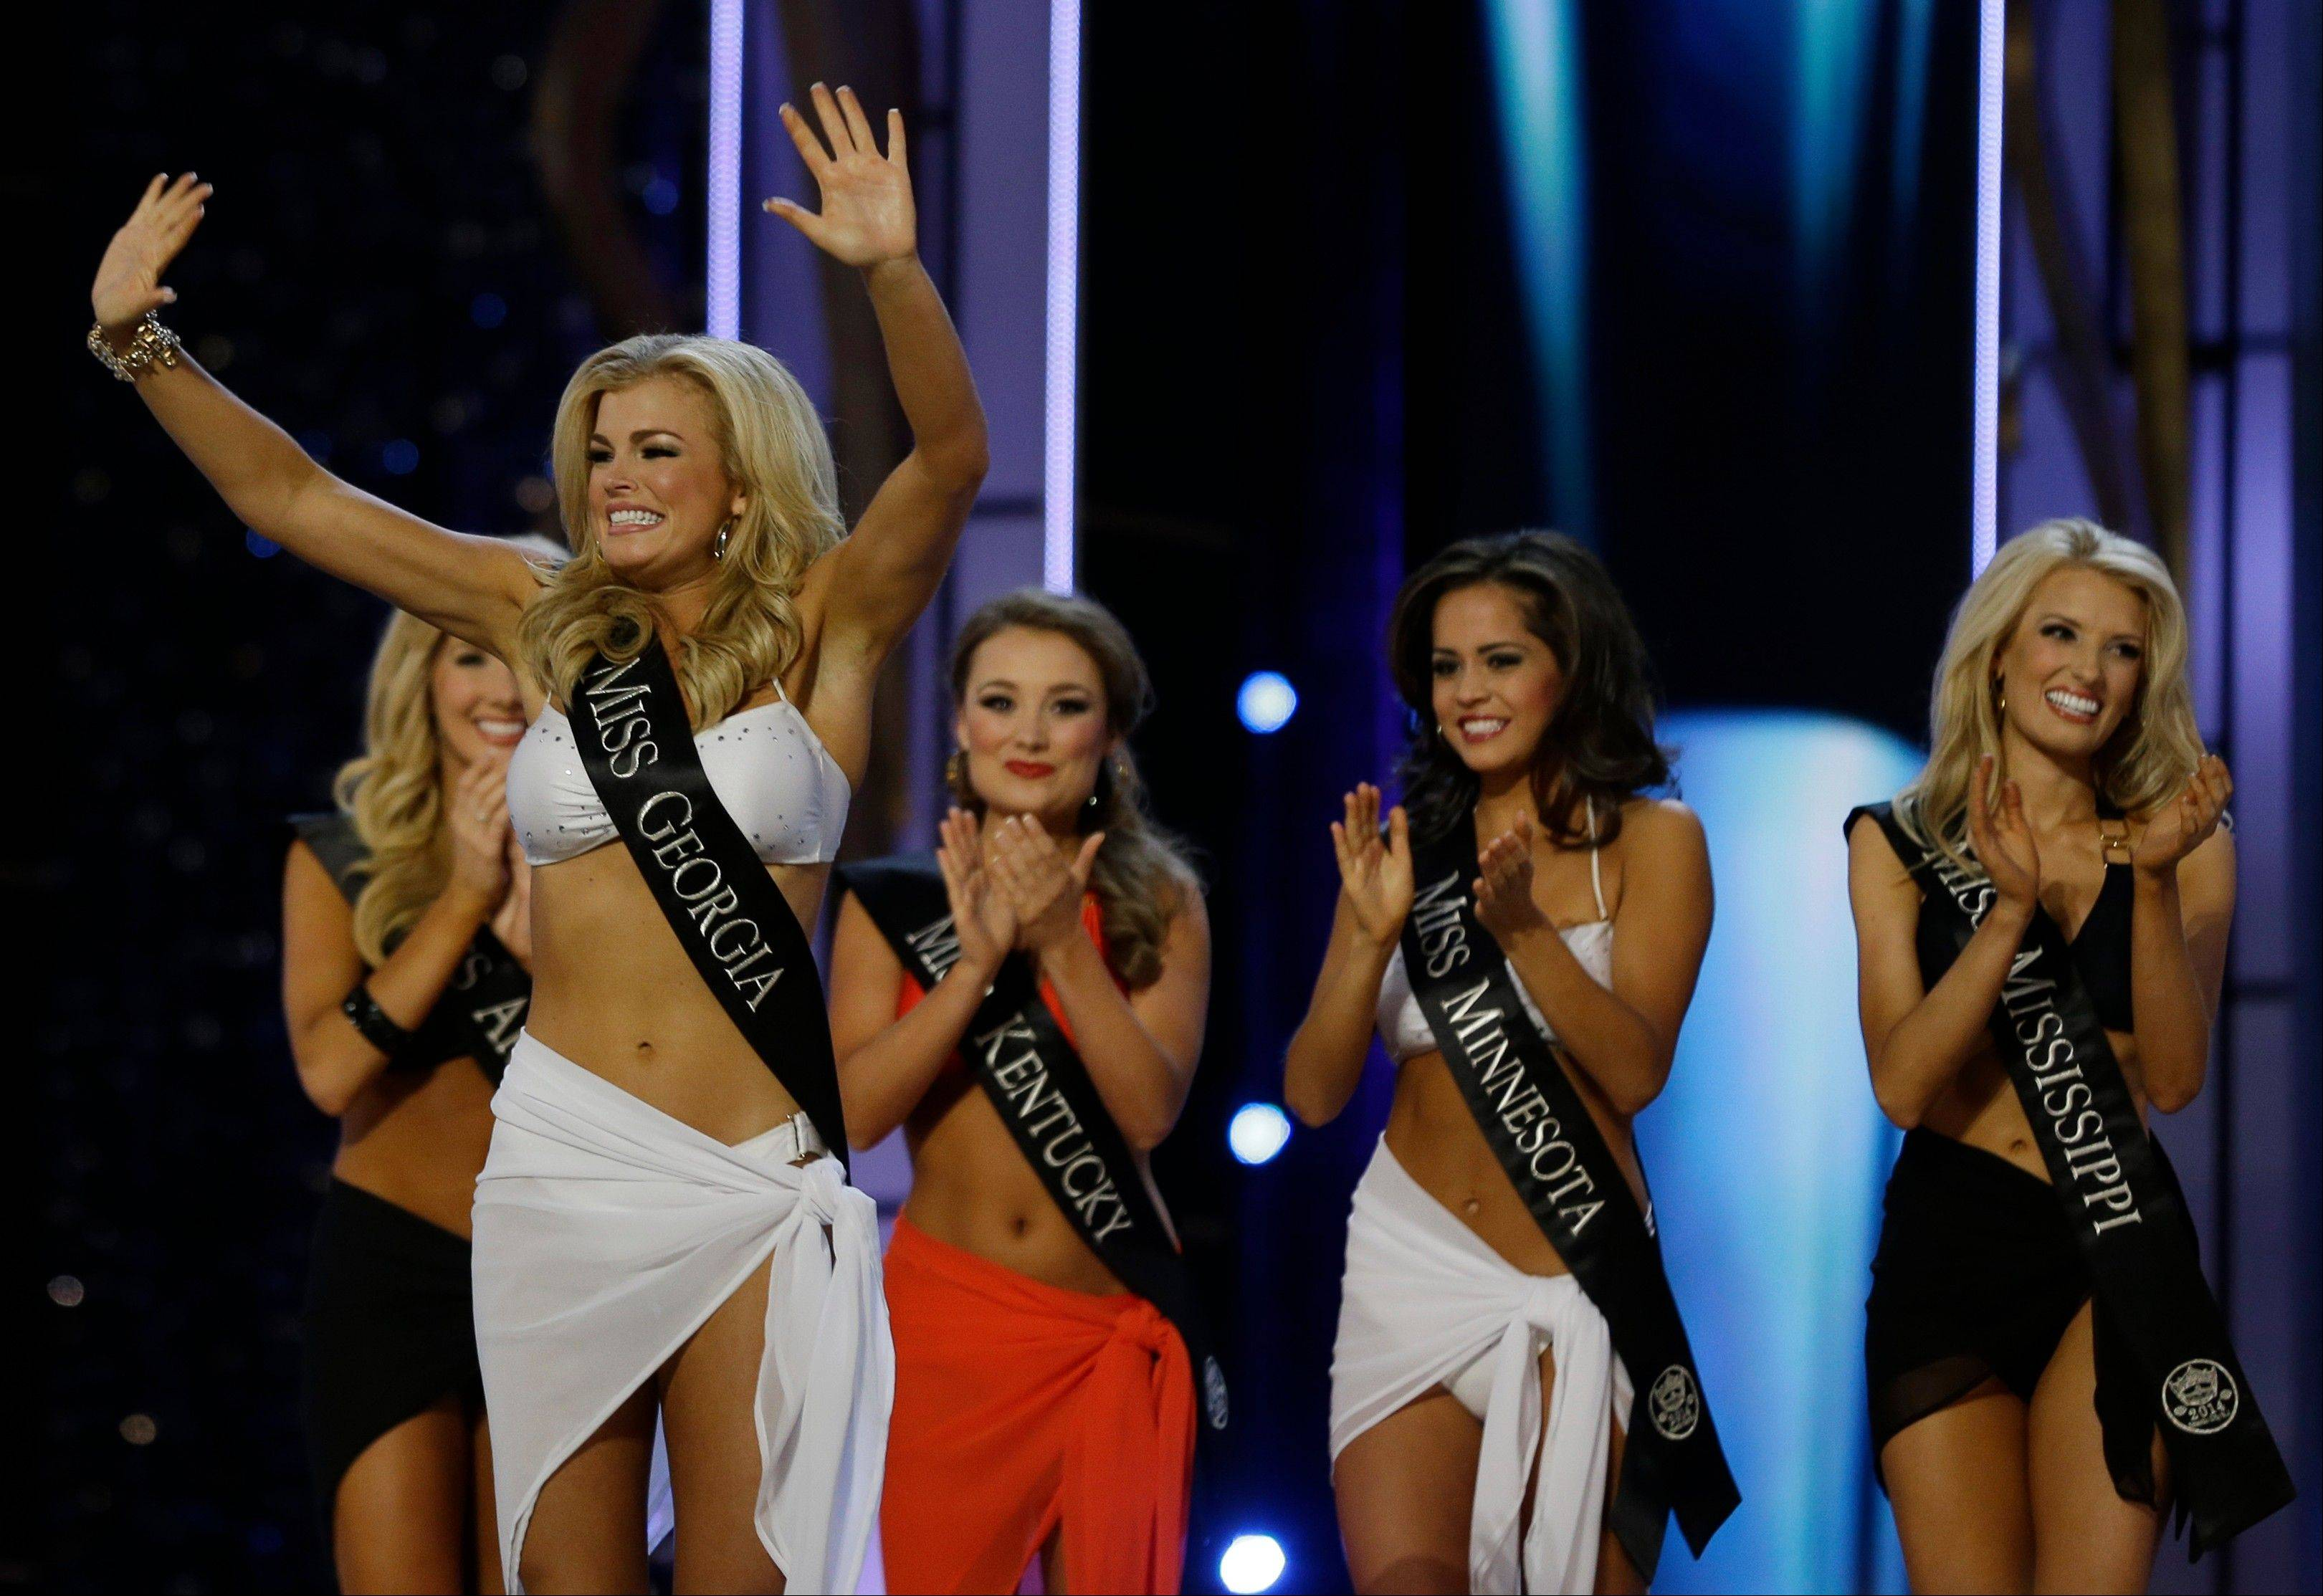 Miss Georgia Carly Mathis acknowledges the crowd after advancing beyond the lifestyle competition during the Miss America 2014 pageant, Sunday, Sept. 15, 2013, in Atlantic City, N.J.